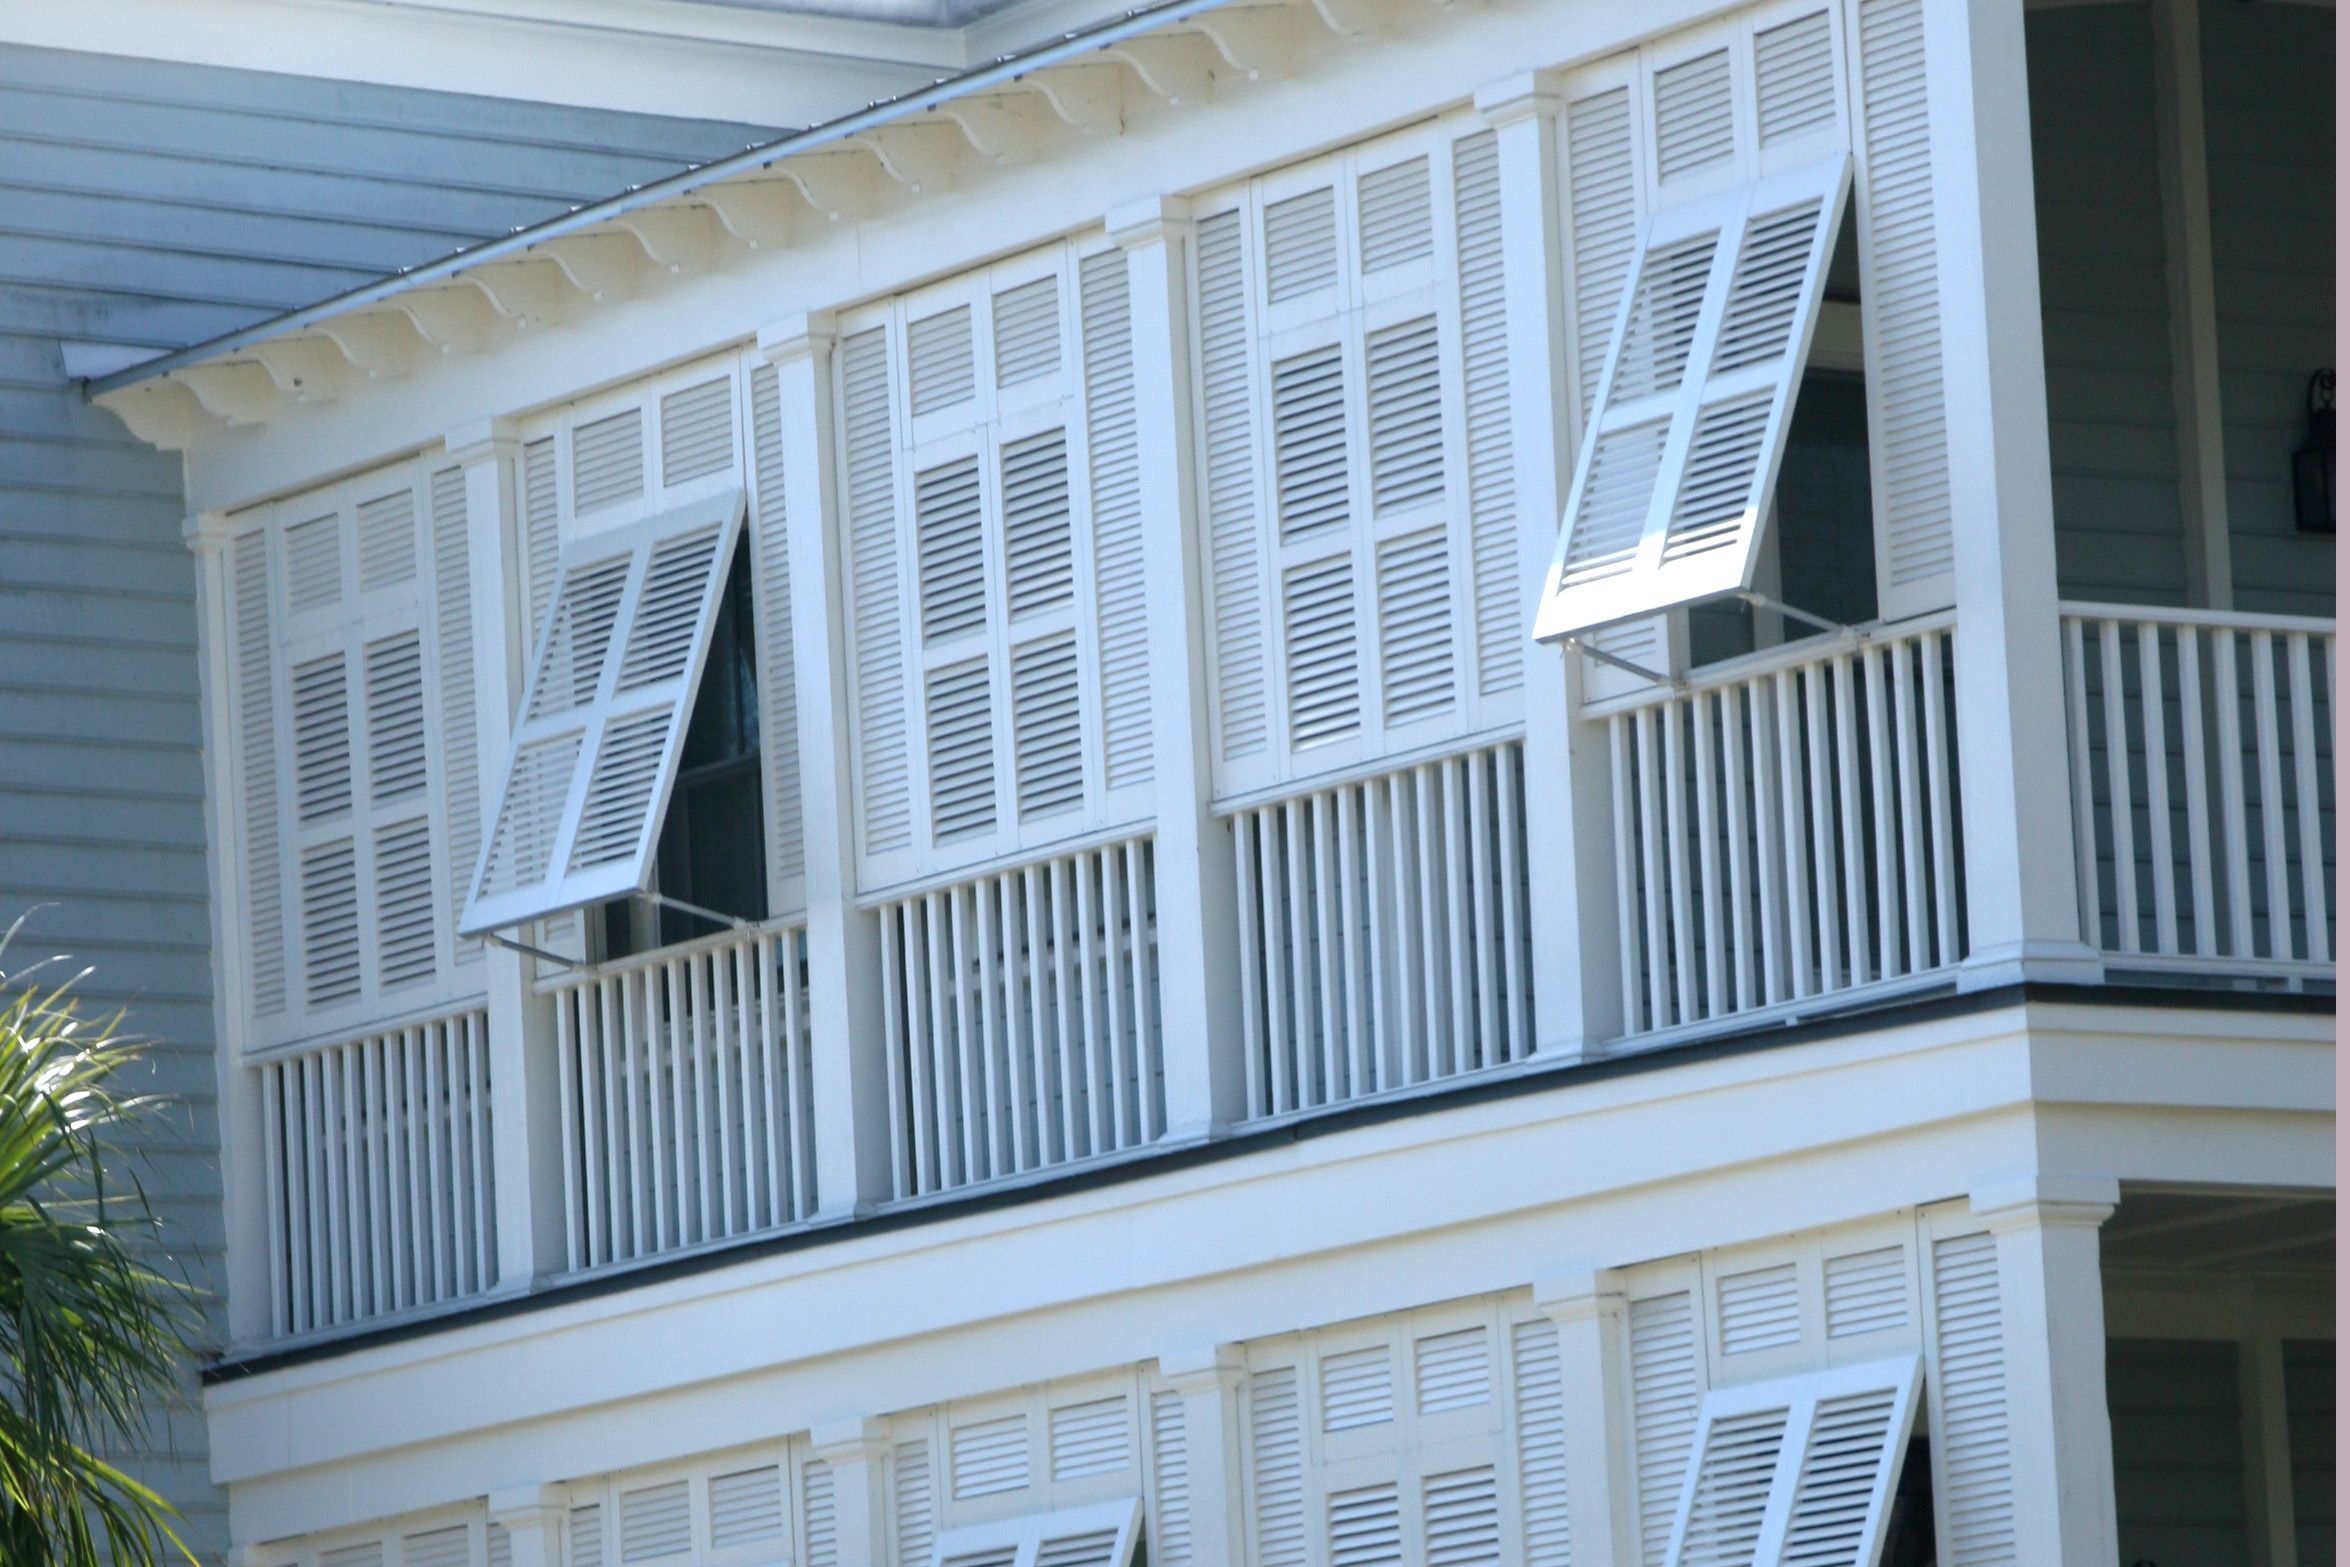 Bahama Shutter    Warm Tropical Breezes And A Whole Wall Of Shutters